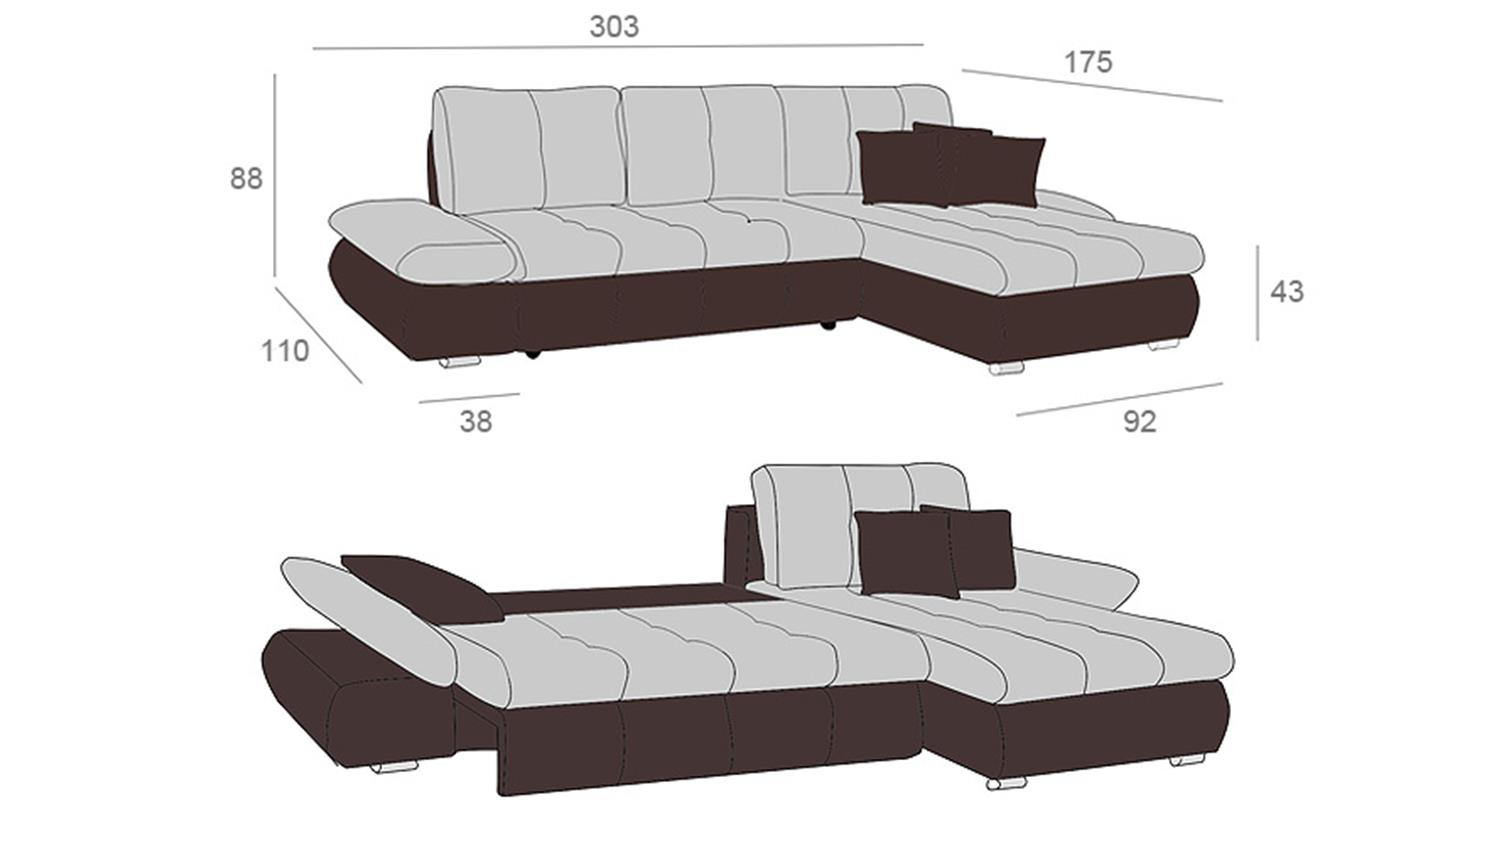 ecksofa zenzo braun und grau inkl kissen rec rechts 303x175. Black Bedroom Furniture Sets. Home Design Ideas